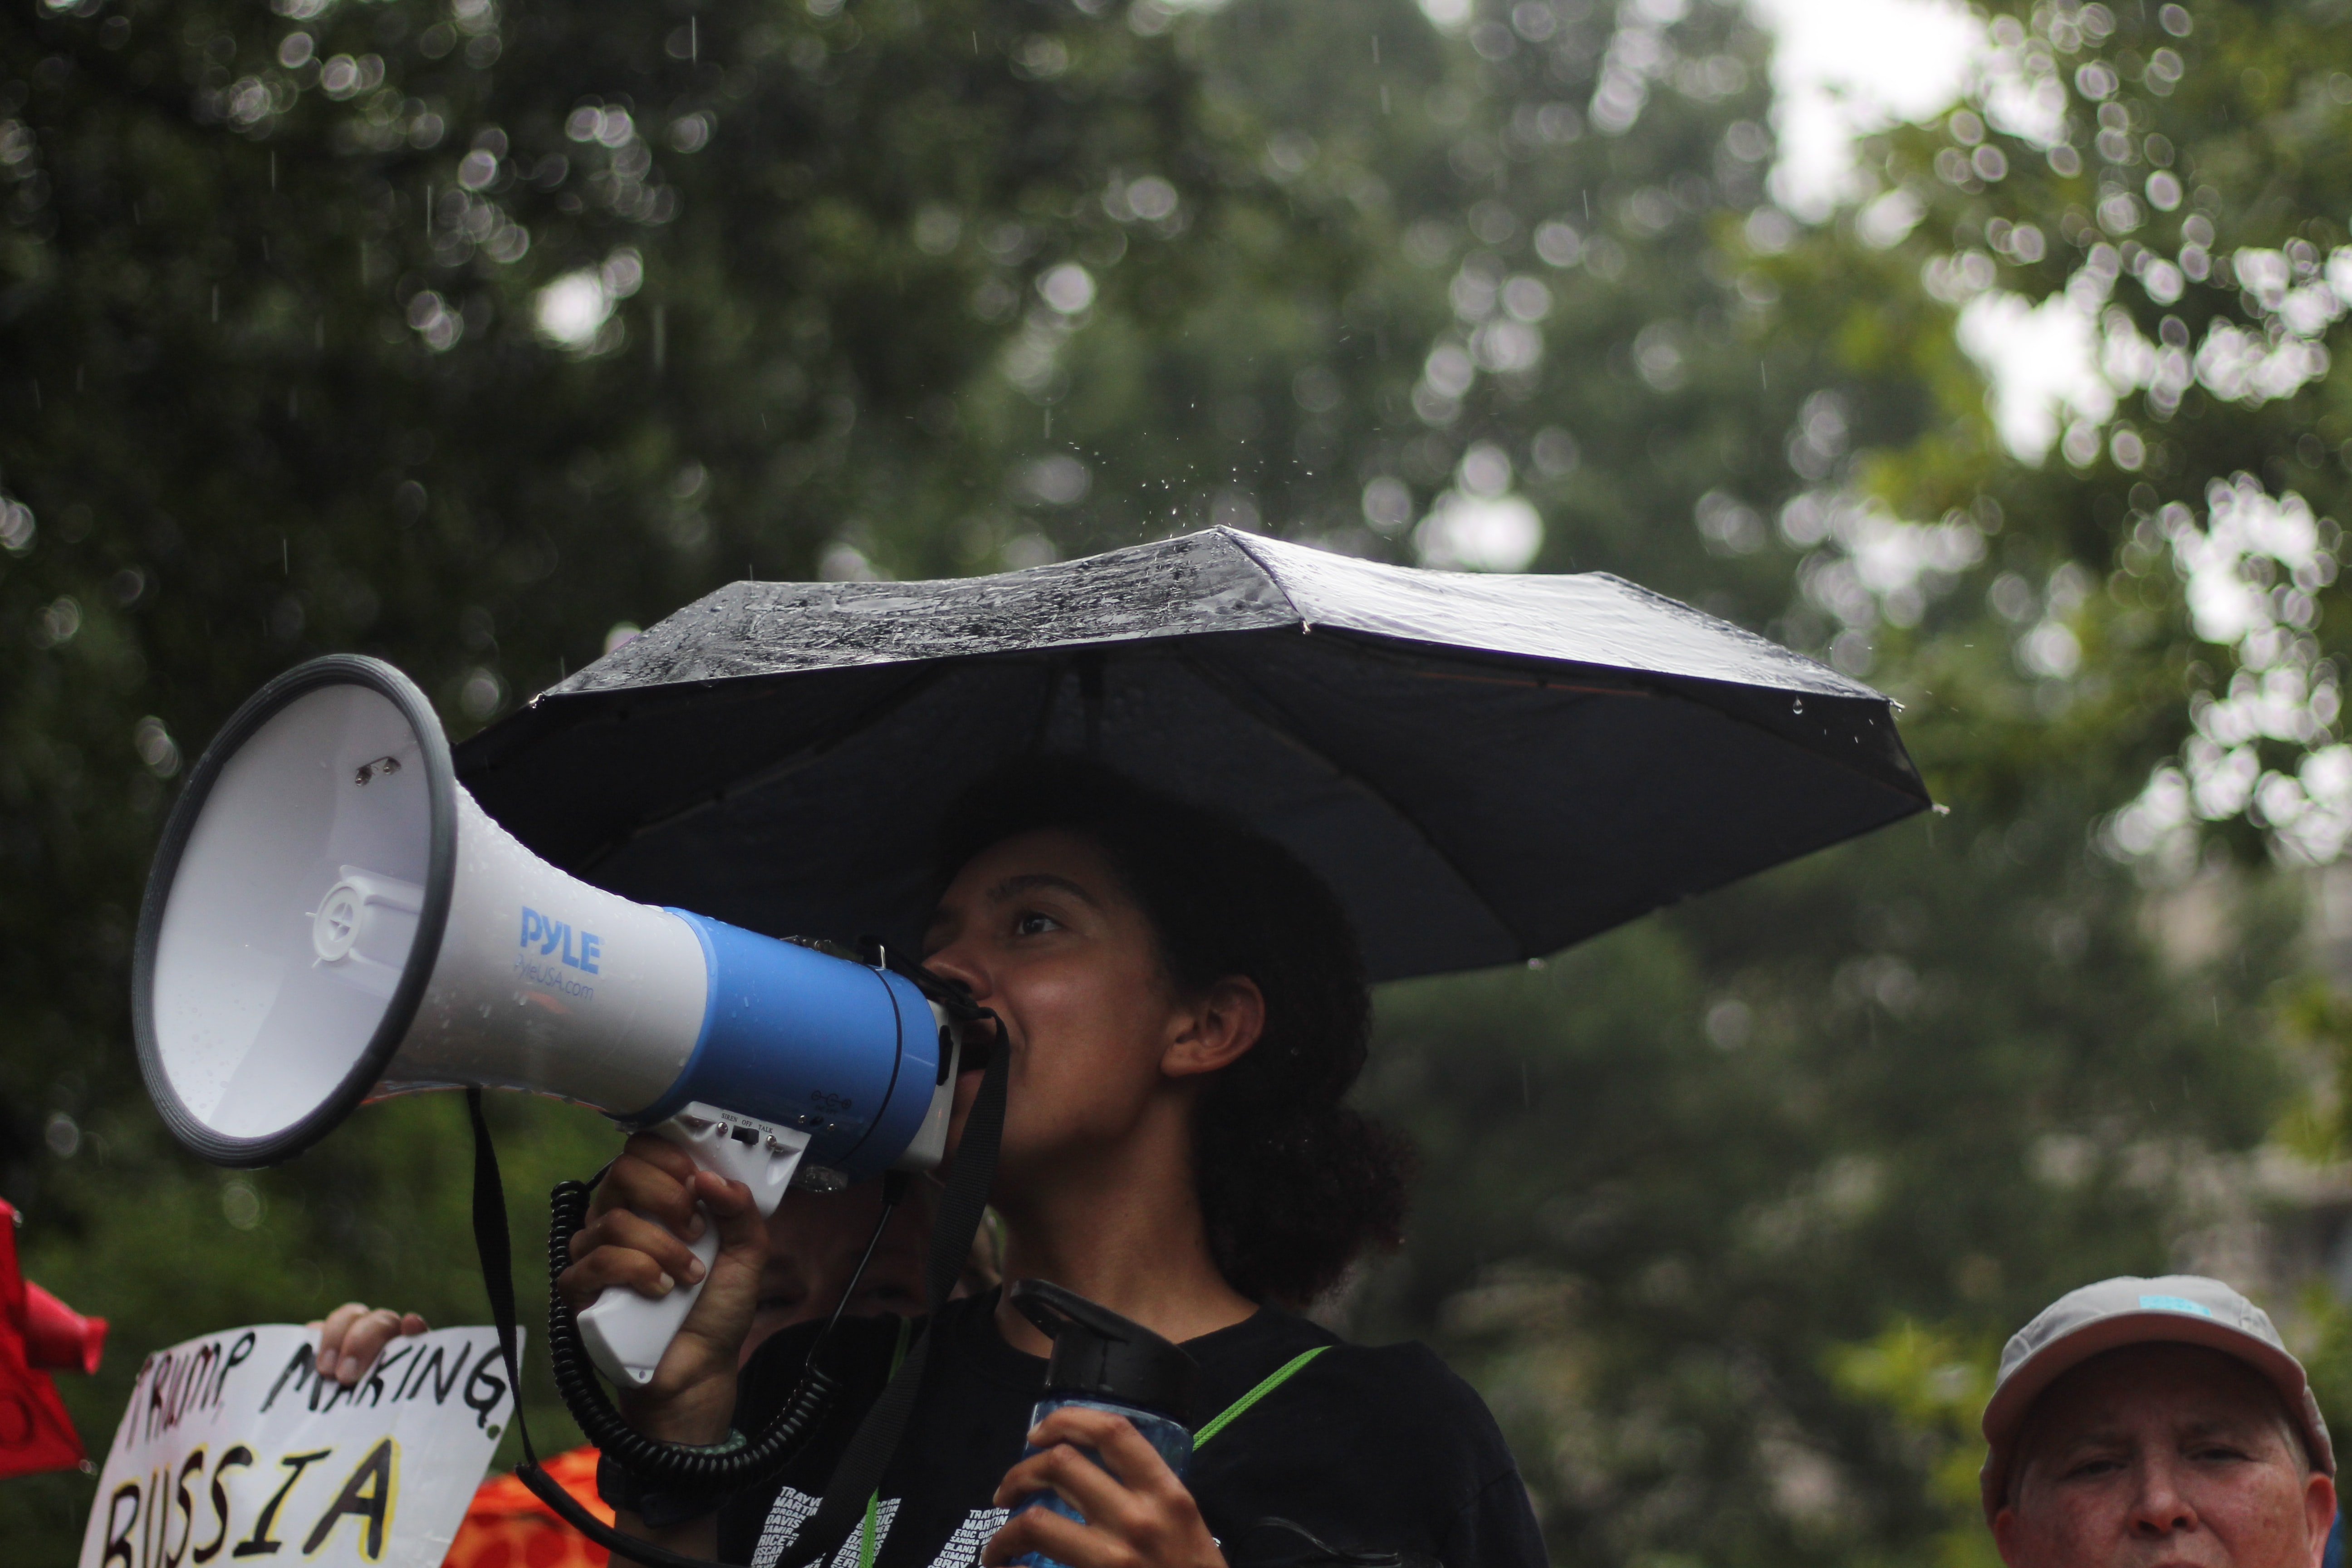 woman standing holding umbrella and white megaphone during daytime